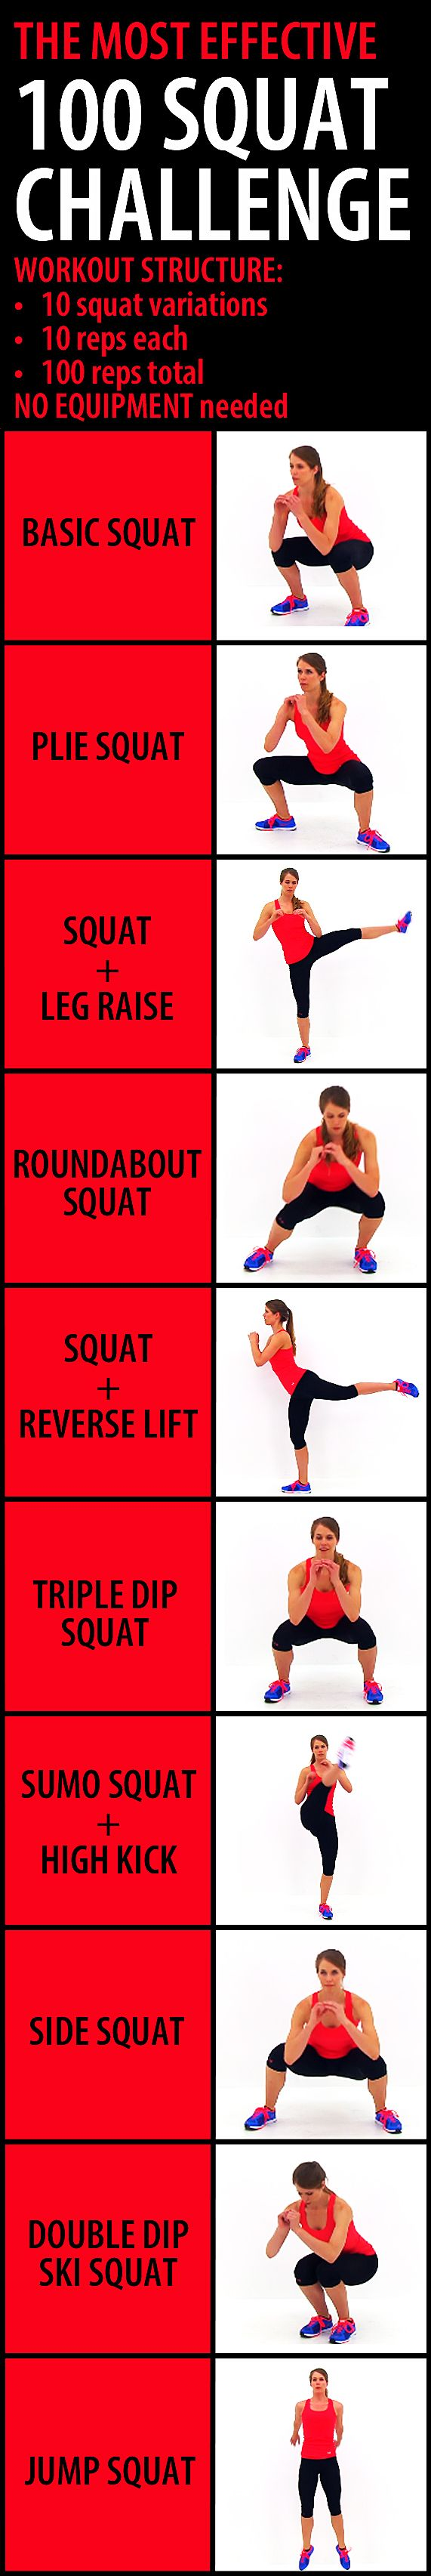 It's so simple! Time to get squatting today!  visit our web site to read more http://dailyhealthyfitness.com/fitness